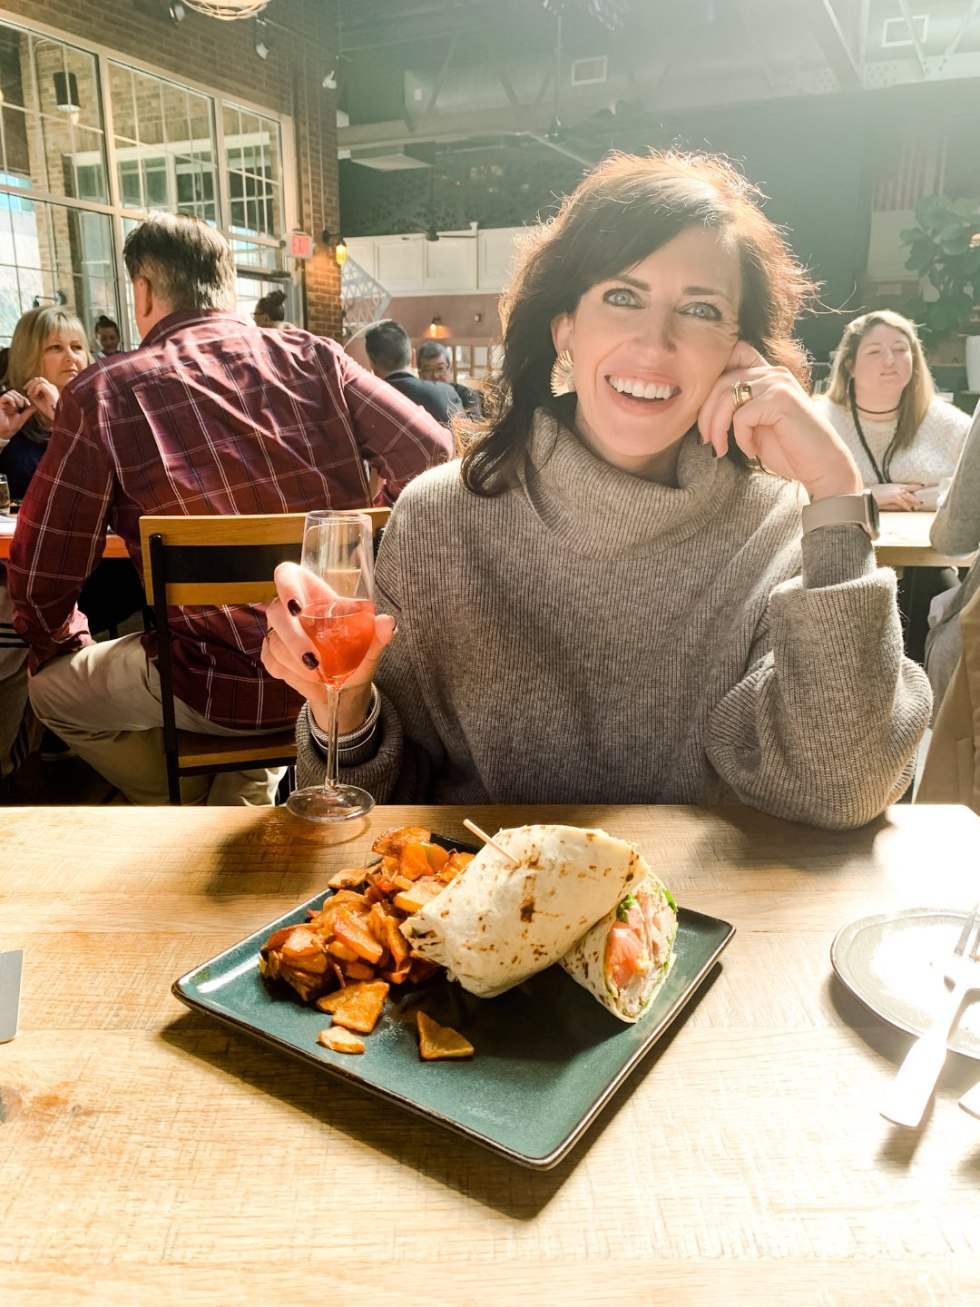 Where to Get Brunch in Raleigh: the 7 Best Spots - I'm Fixin' To - @mbg0112 | Brunch in Raleigh by popular Raleigh blog, I'm Fixin To: image of a woman eating at Whiskey Kitchen.